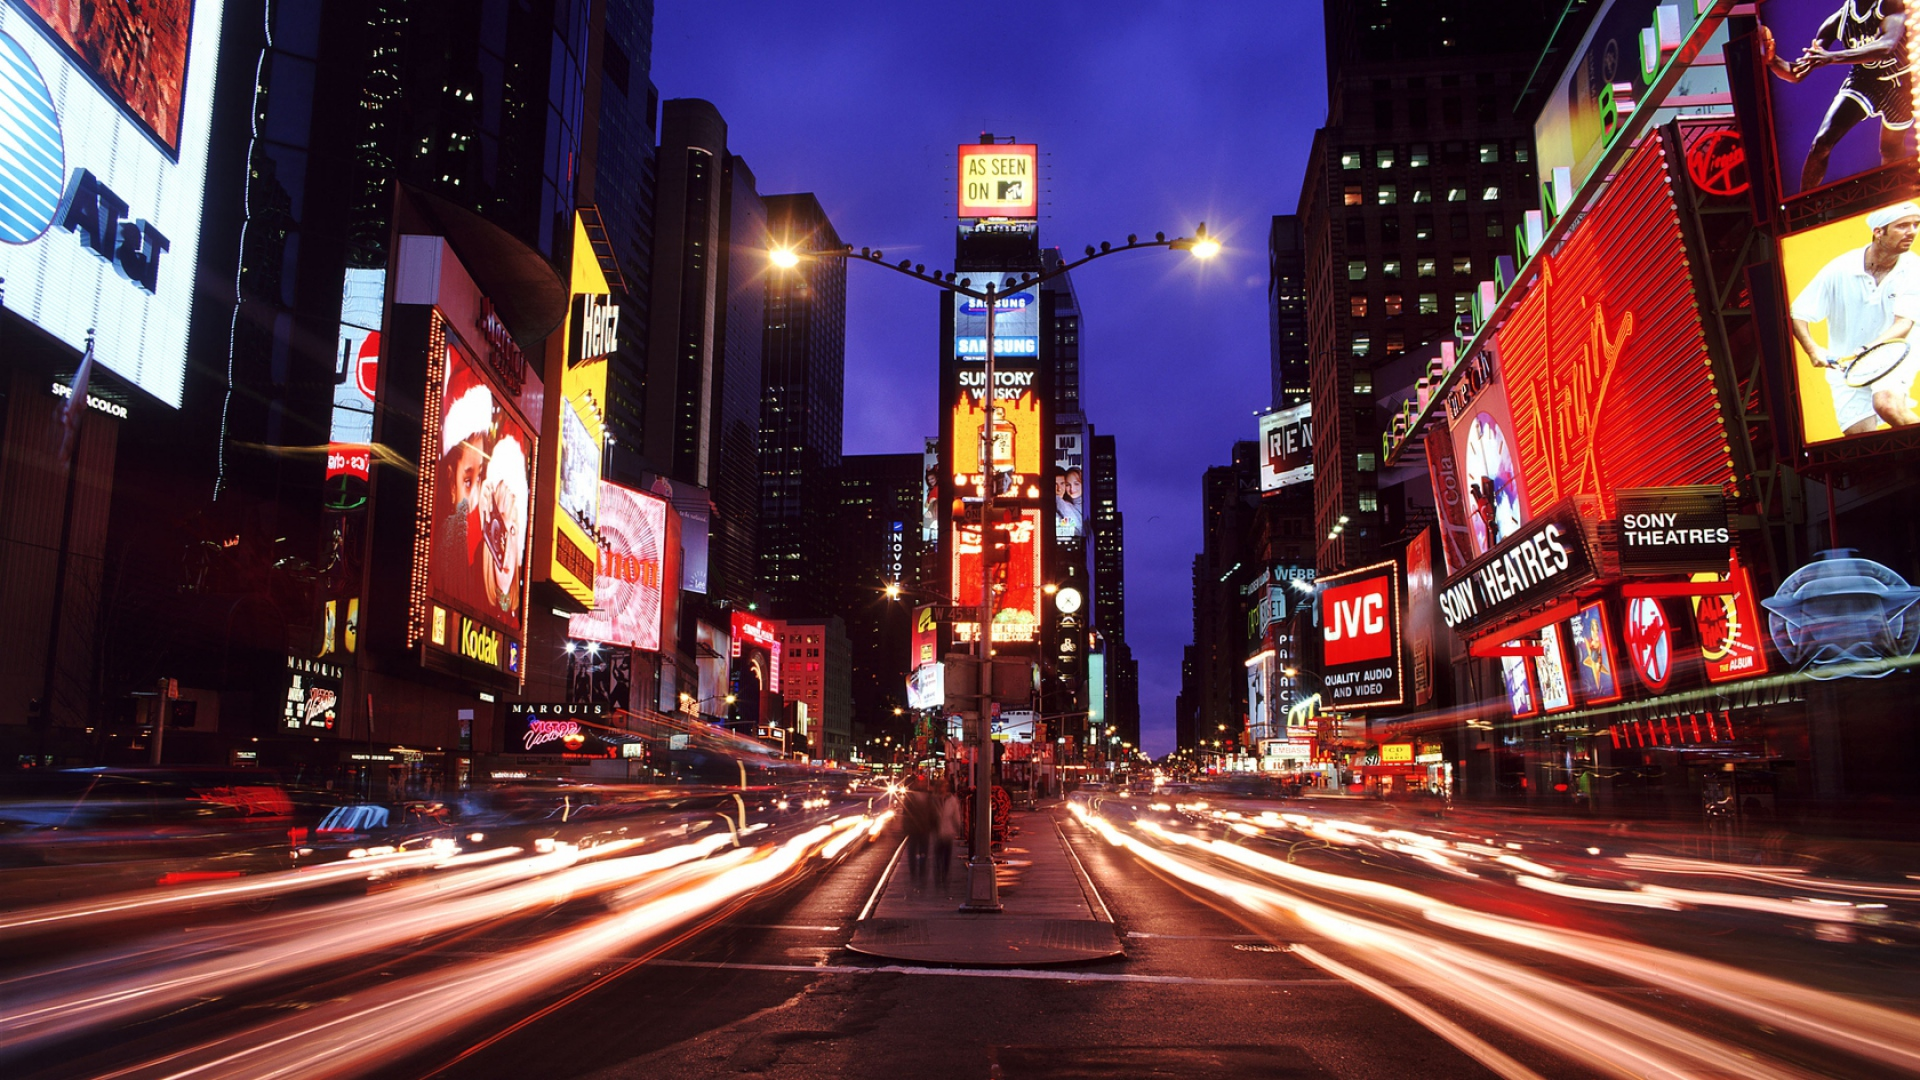 Most Inspiring Wallpaper Night Cities - new_york_times_square_night_city_metropolis_58676_1920x1080  Image.jpg